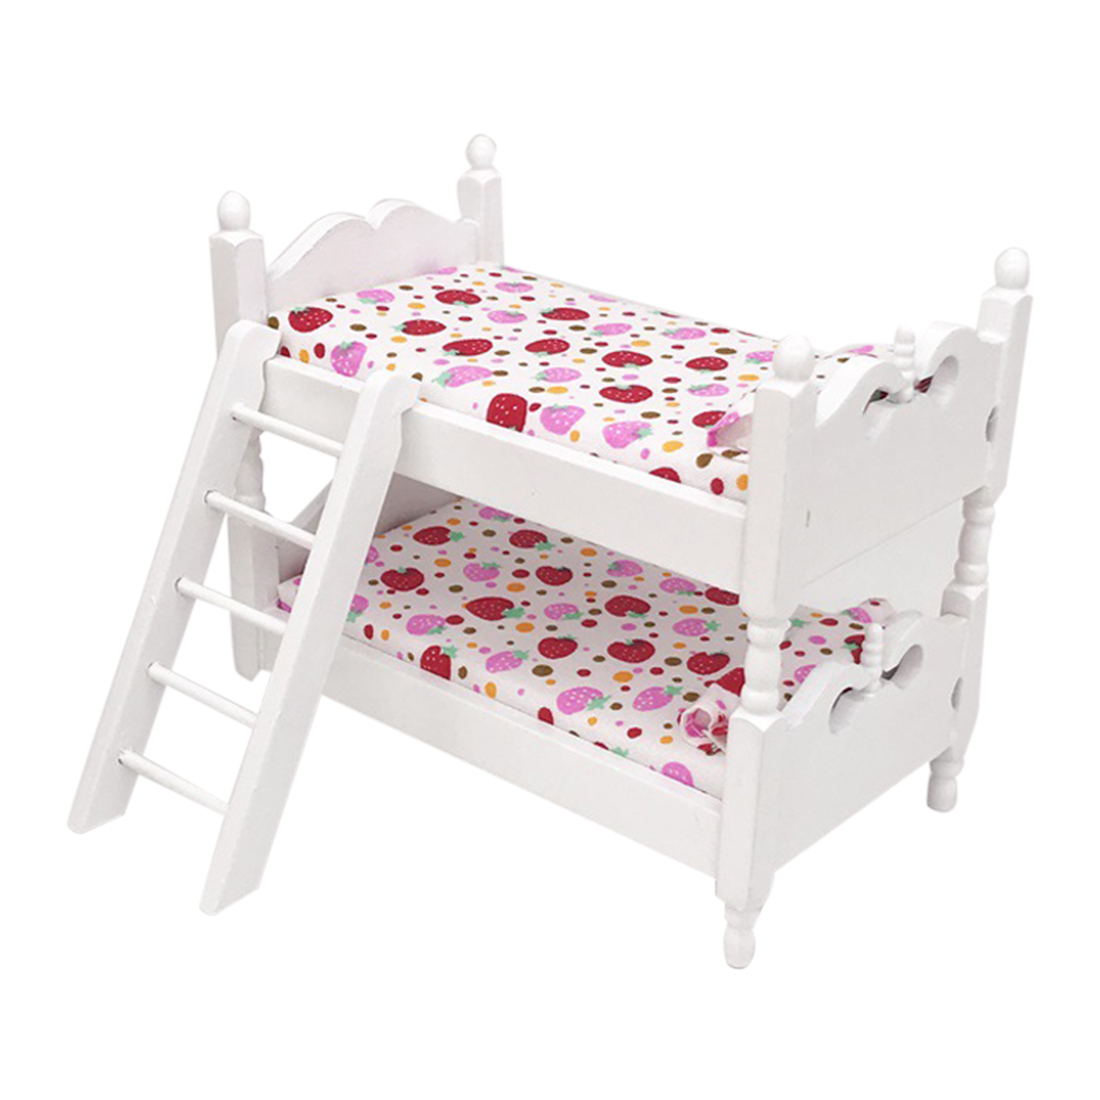 1/12 Scale Miniature Dollhouse Pocket Children Bedroom Bunk Bed Diy Assembly Model Dolls Houses Accessories - Strawberry